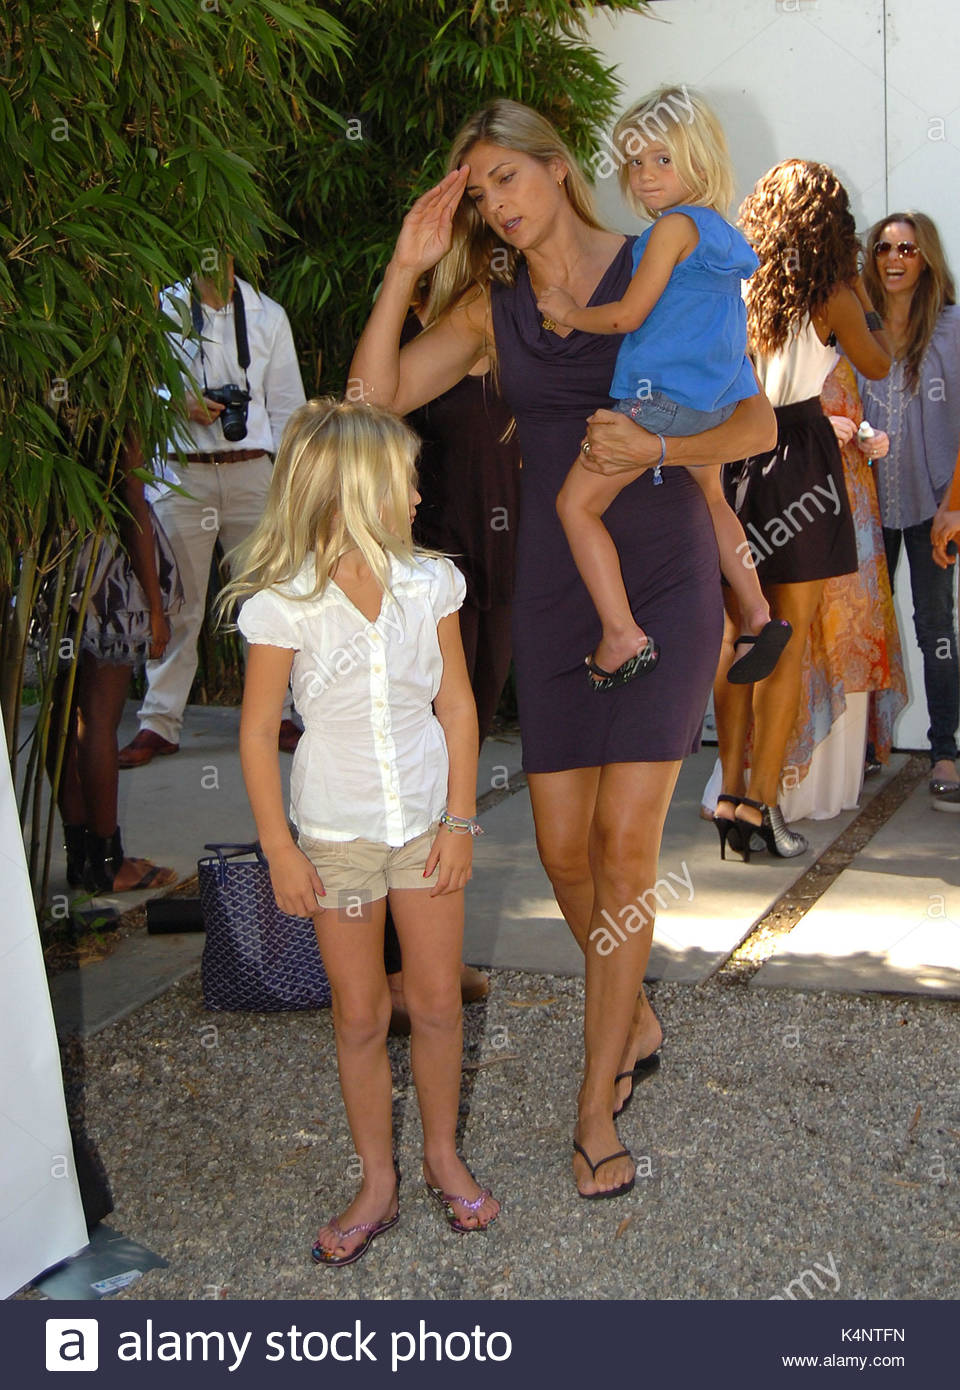 Discussion on this topic: Pat Stanley, gabrielle-reece/